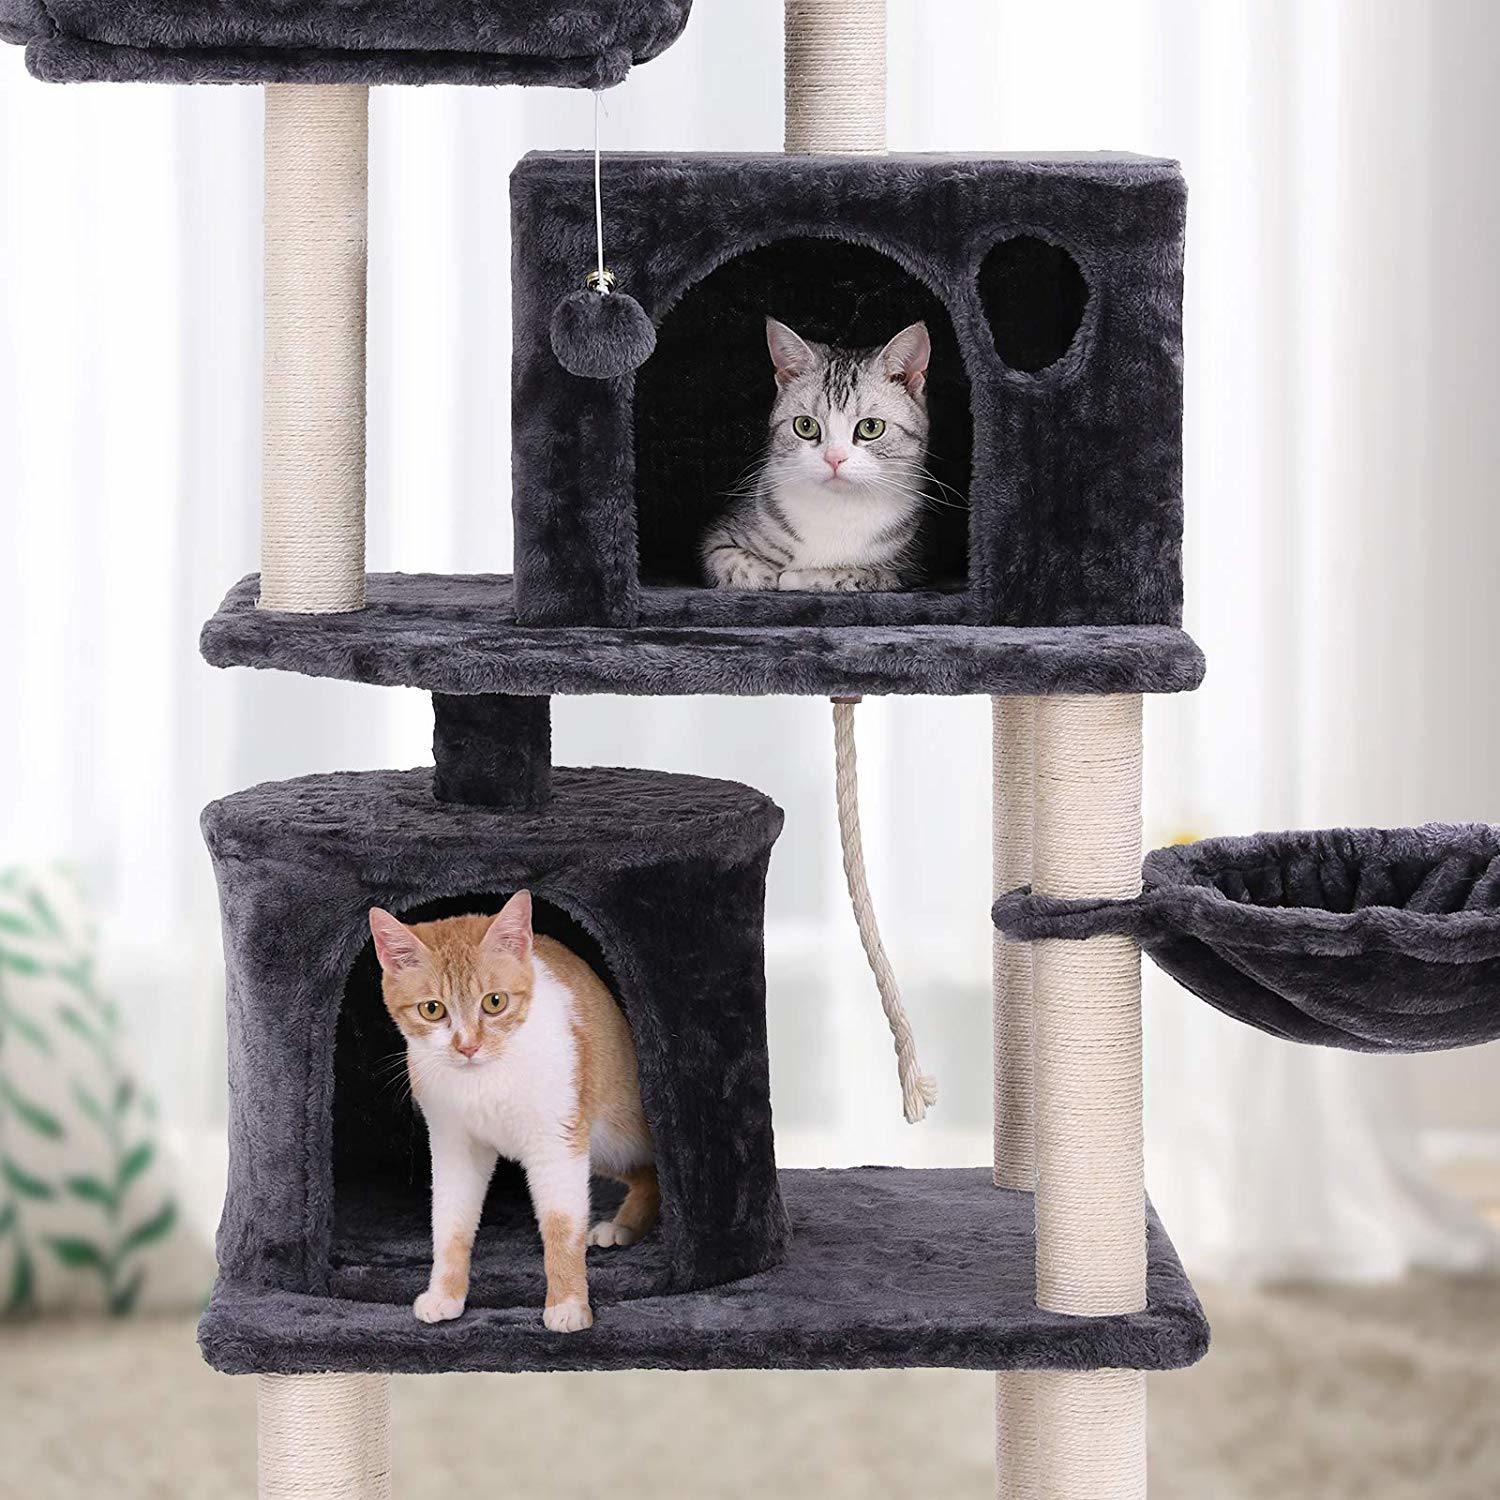 New Multi Level Cat Tree Cat Condo With Scratching Posts Kittens Activity Tower Pet Play House Furniture Sisal Covered Cat Toys Pet Supplies Pet Beds Cots